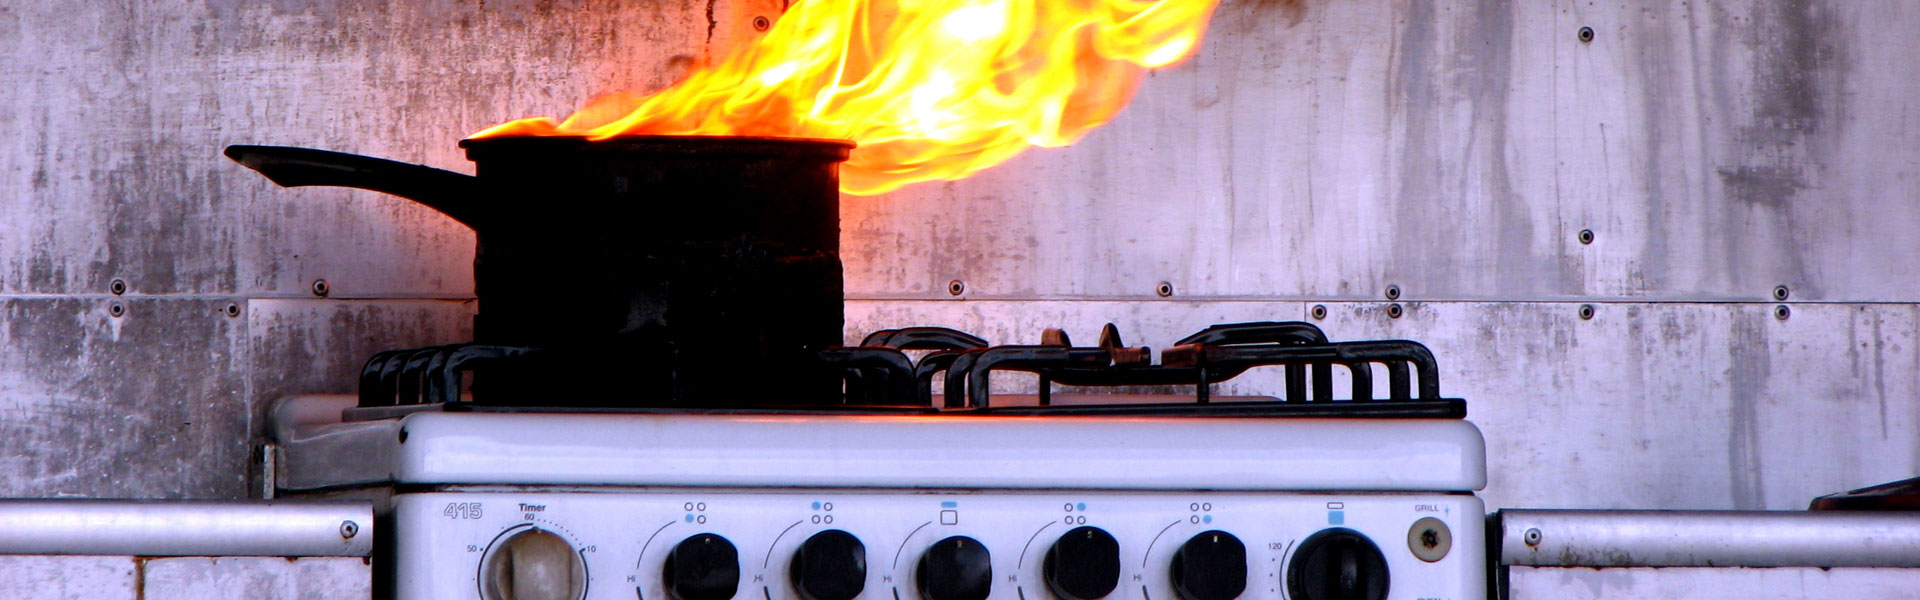 chip pan or grease fire